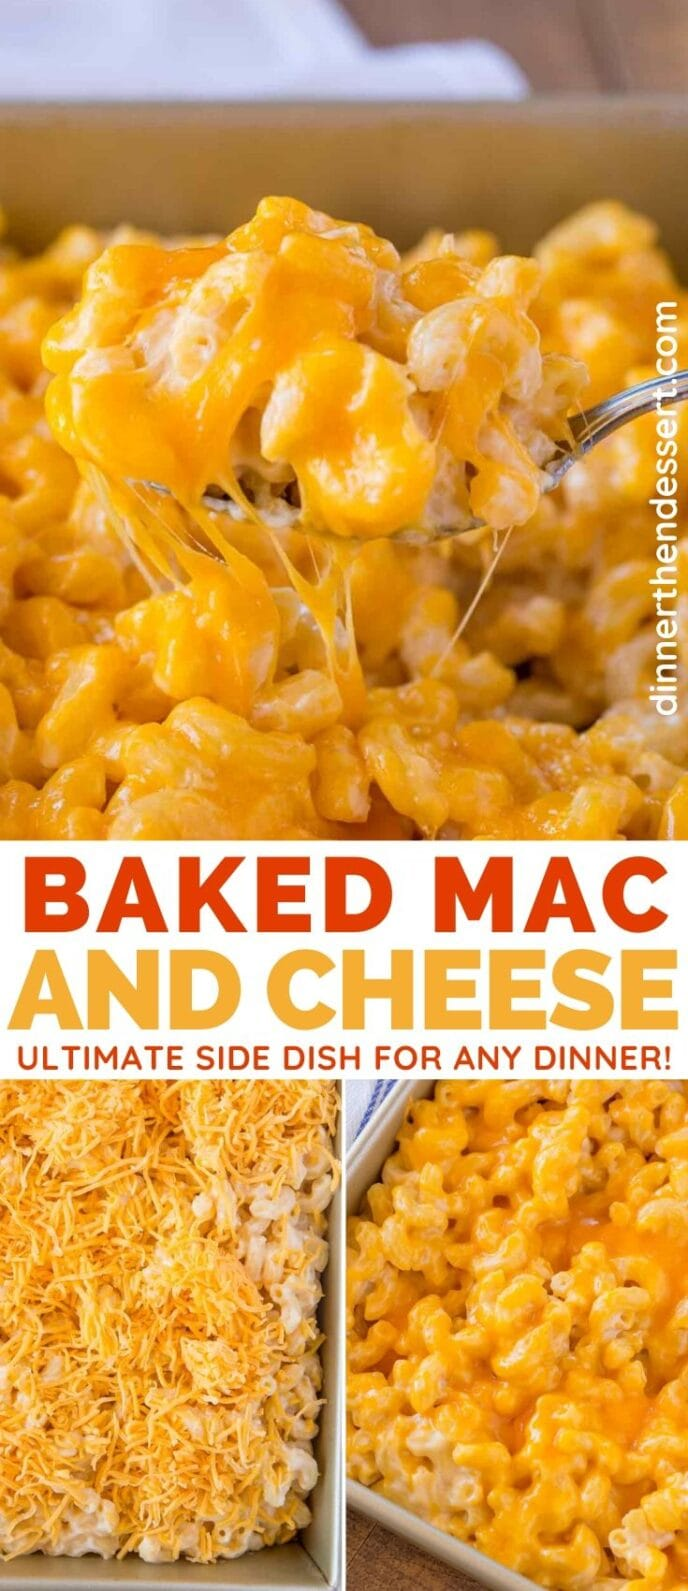 Baked Mac and Cheese collage